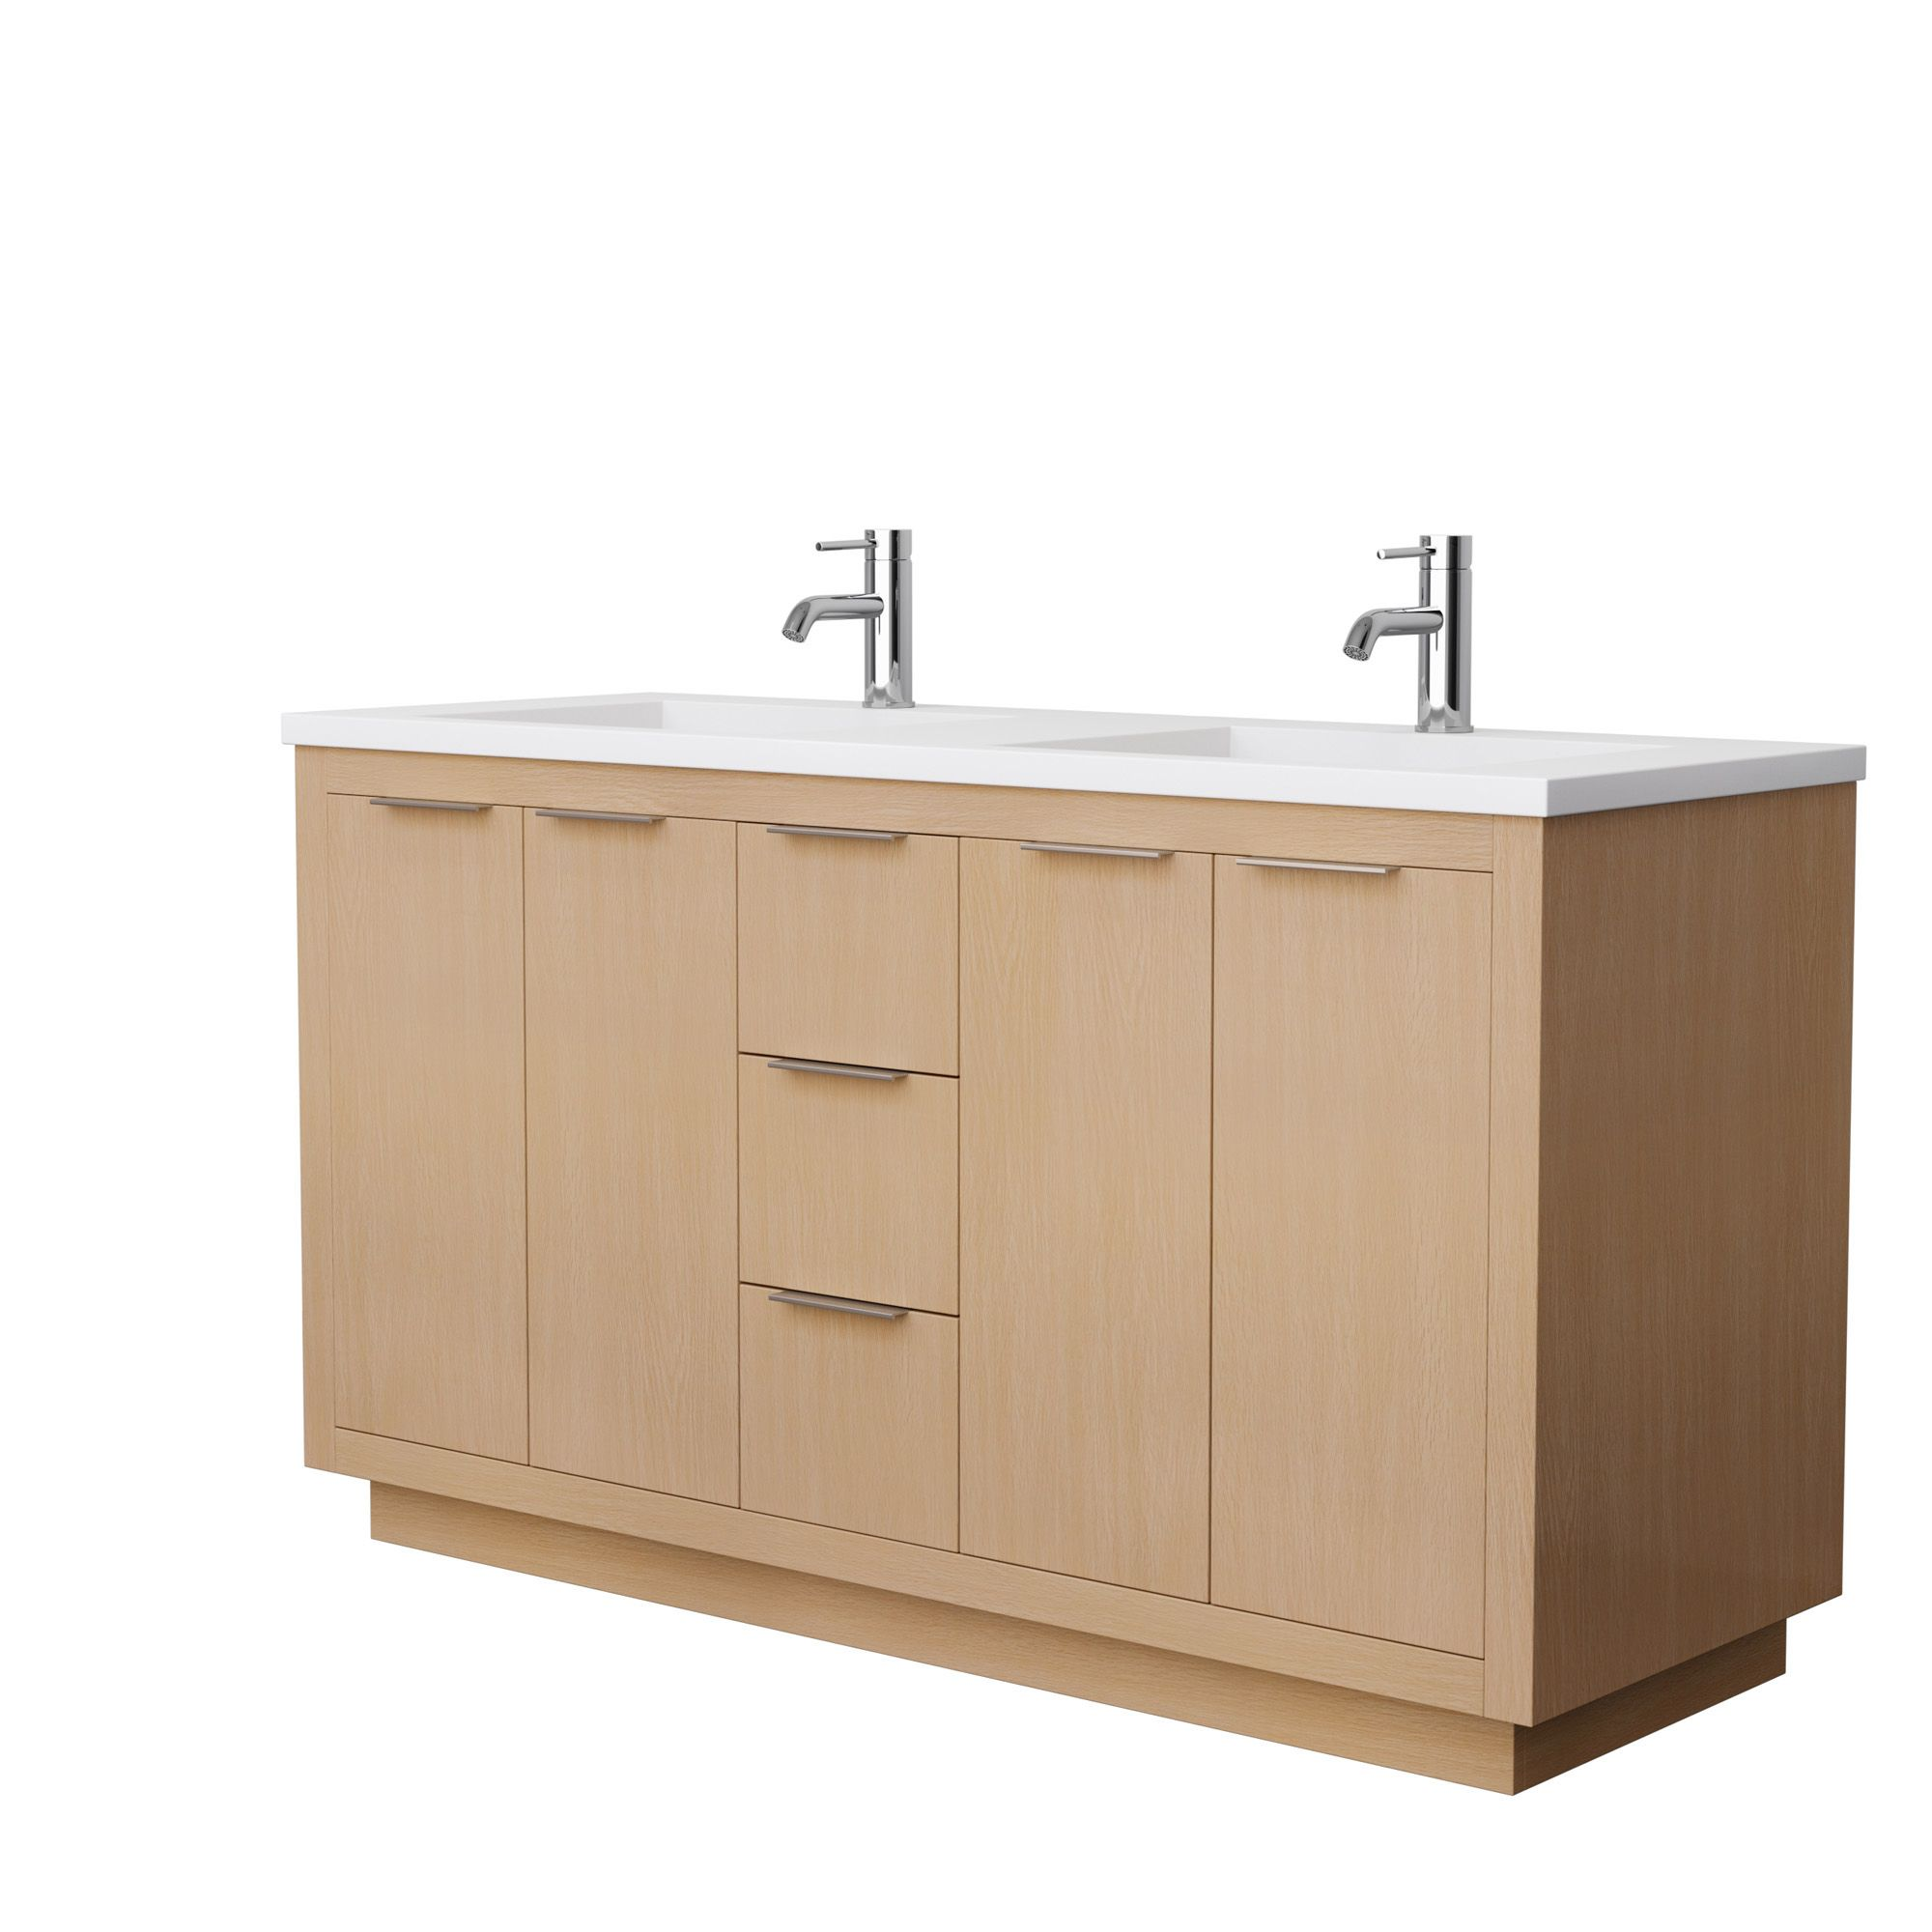 """60"""" Double Bathroom Vanity in Light Straw with Countertop and Hardware Options"""